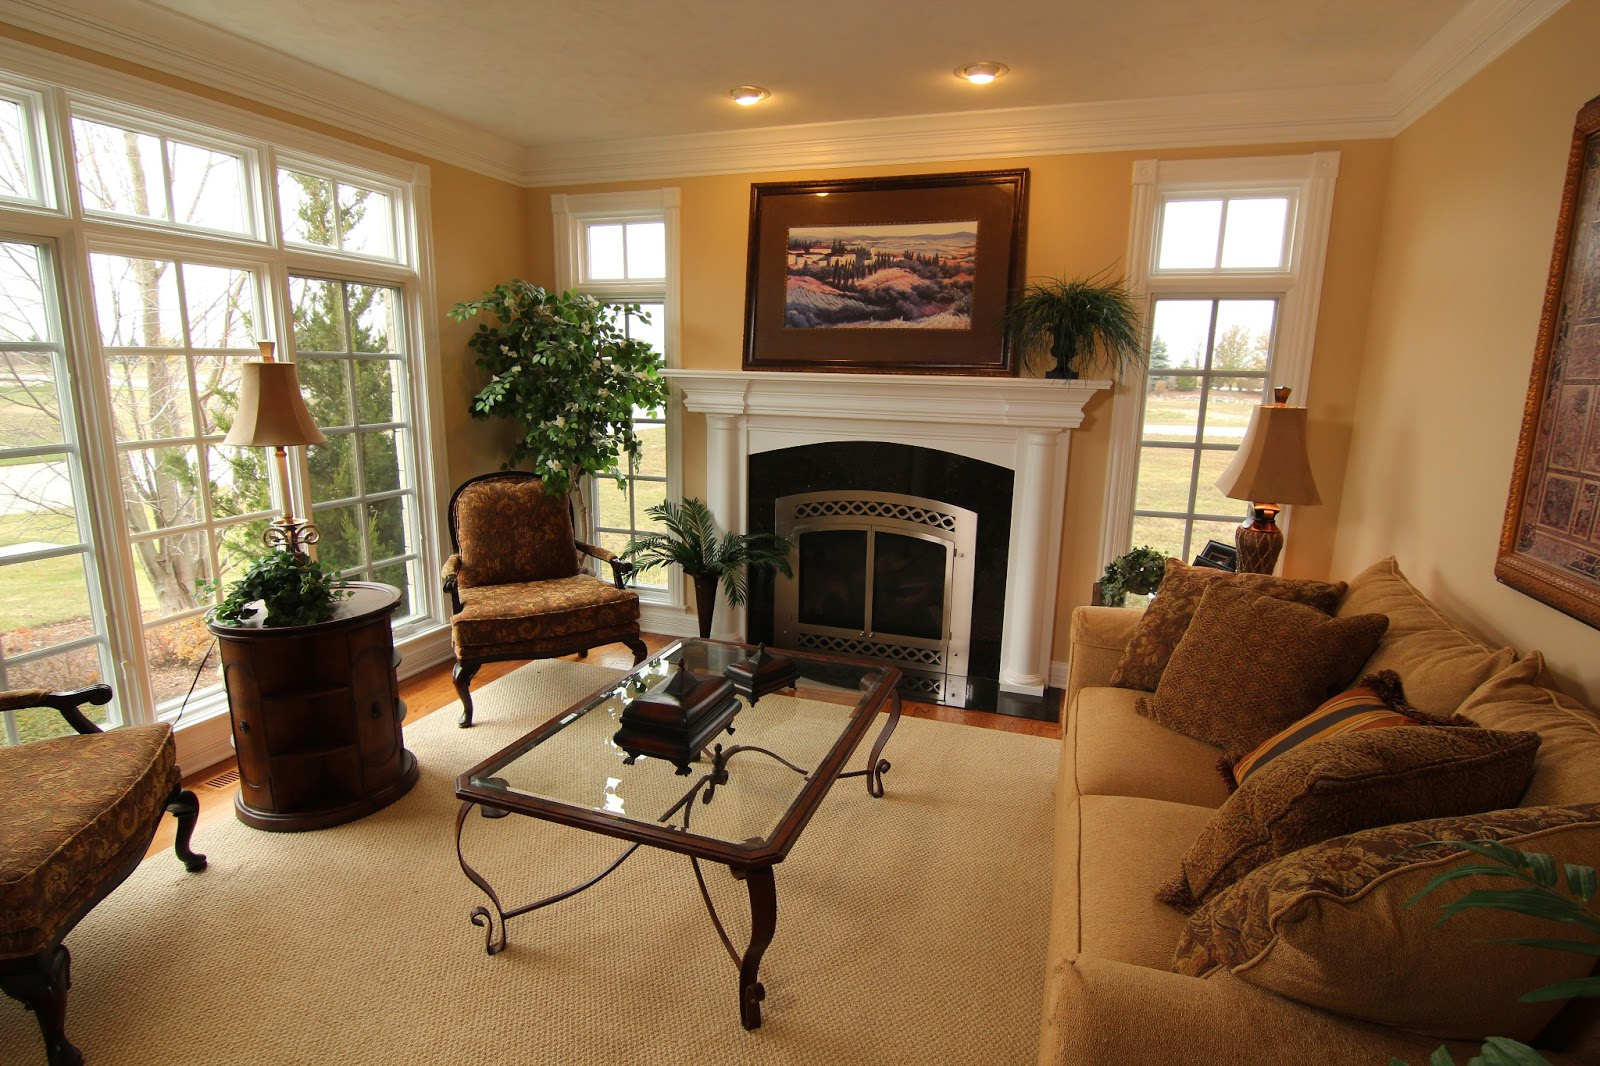 Channel TV Blog Cozy Fireplace Decor Tips For Keeping Warm In Style